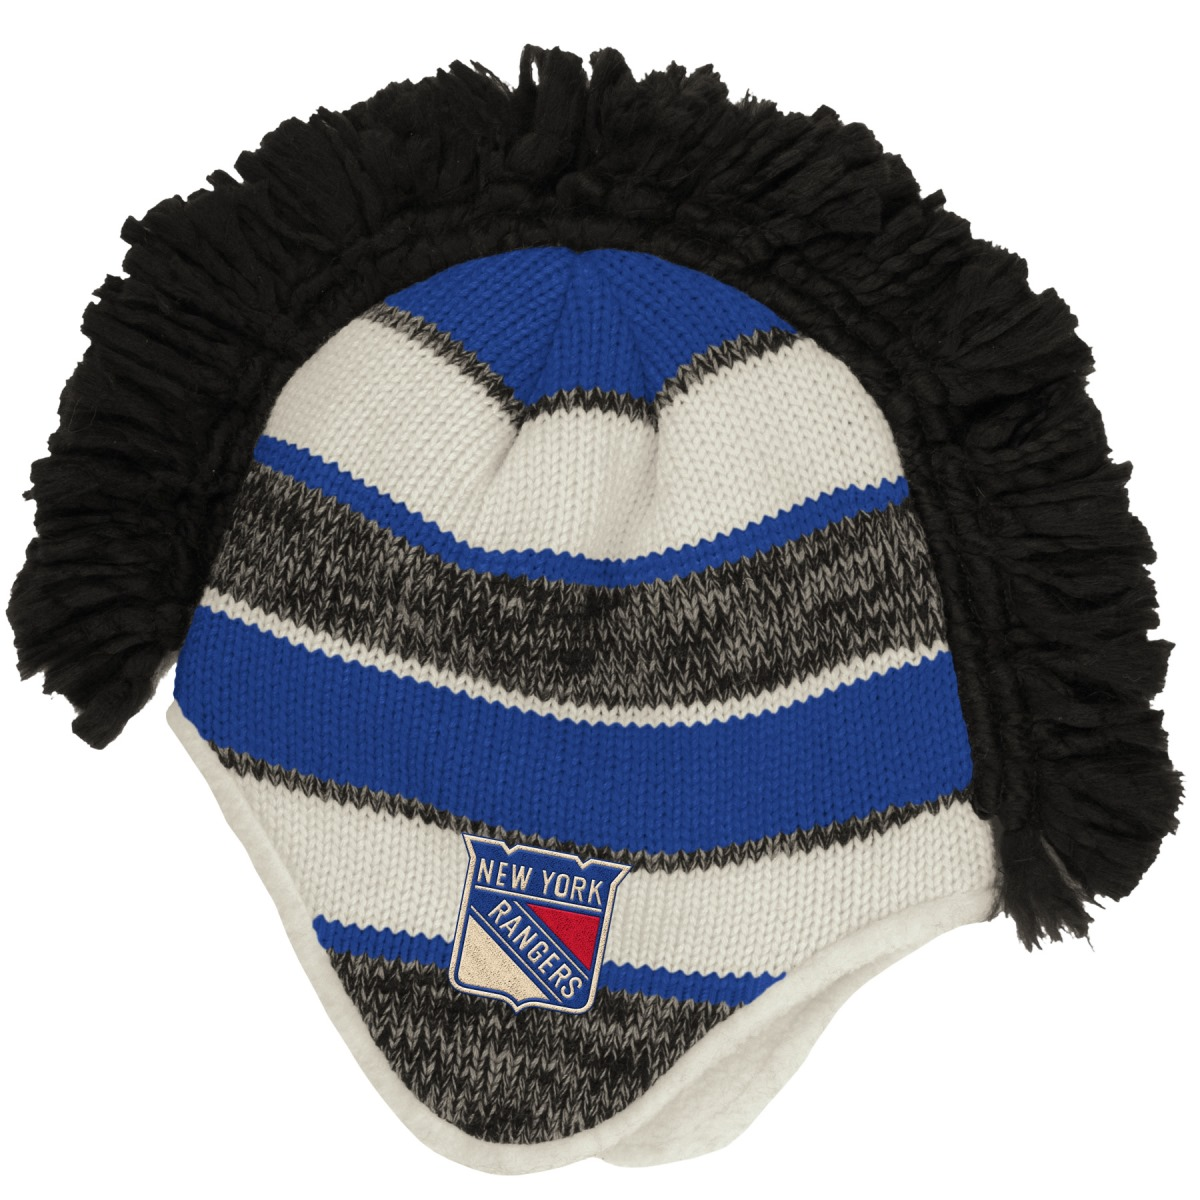 "New York Rangers Reebok NHL 2015 ""Face-Off"" Spiked Mohawk Knit Hat by Reebok"